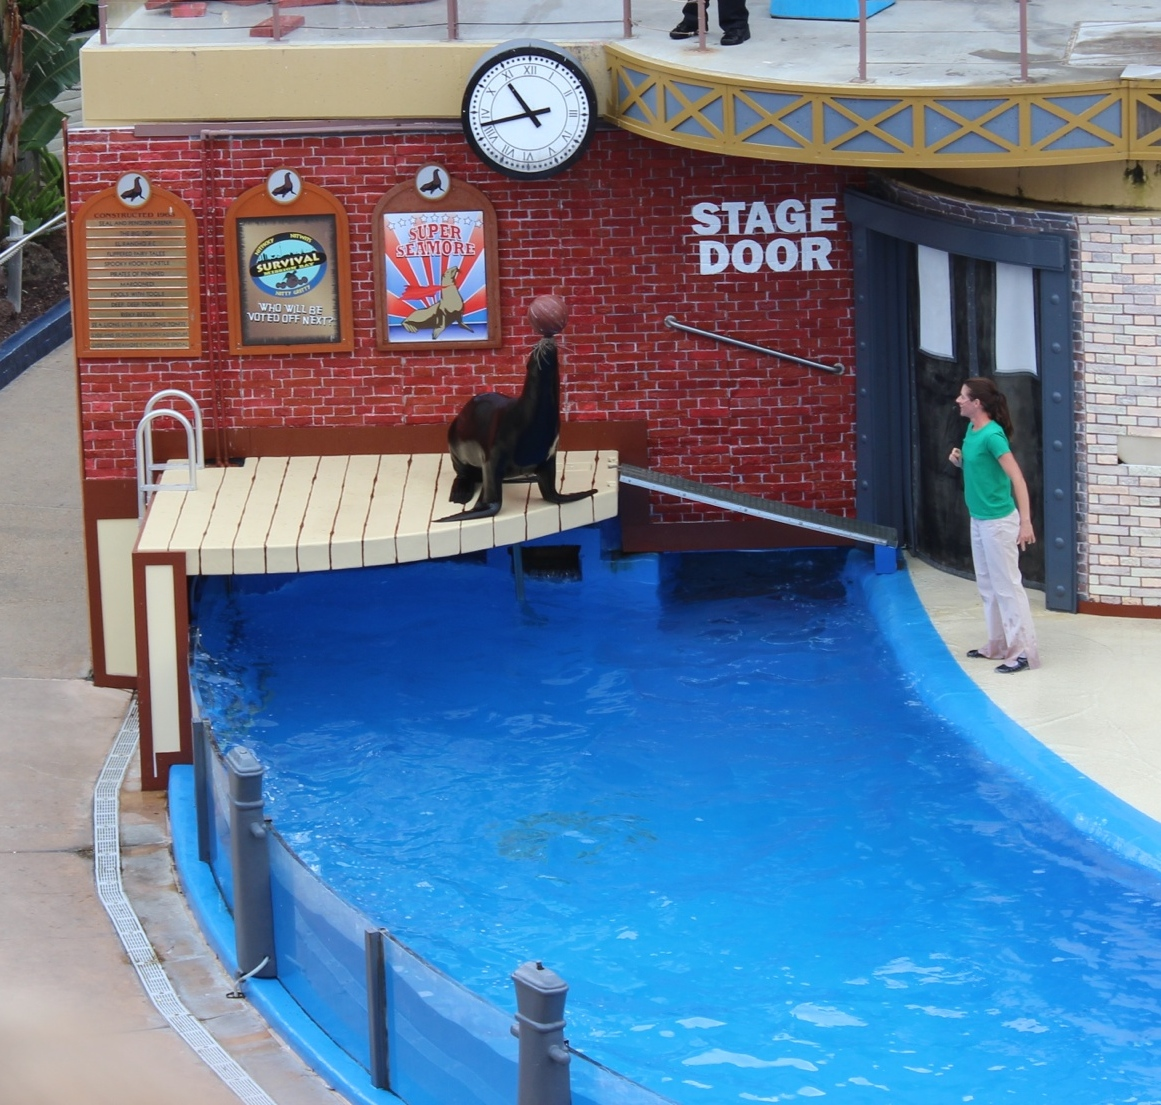 From a recent visit to Sea World.  I doubt this sea lion would keep performing without his rewards.